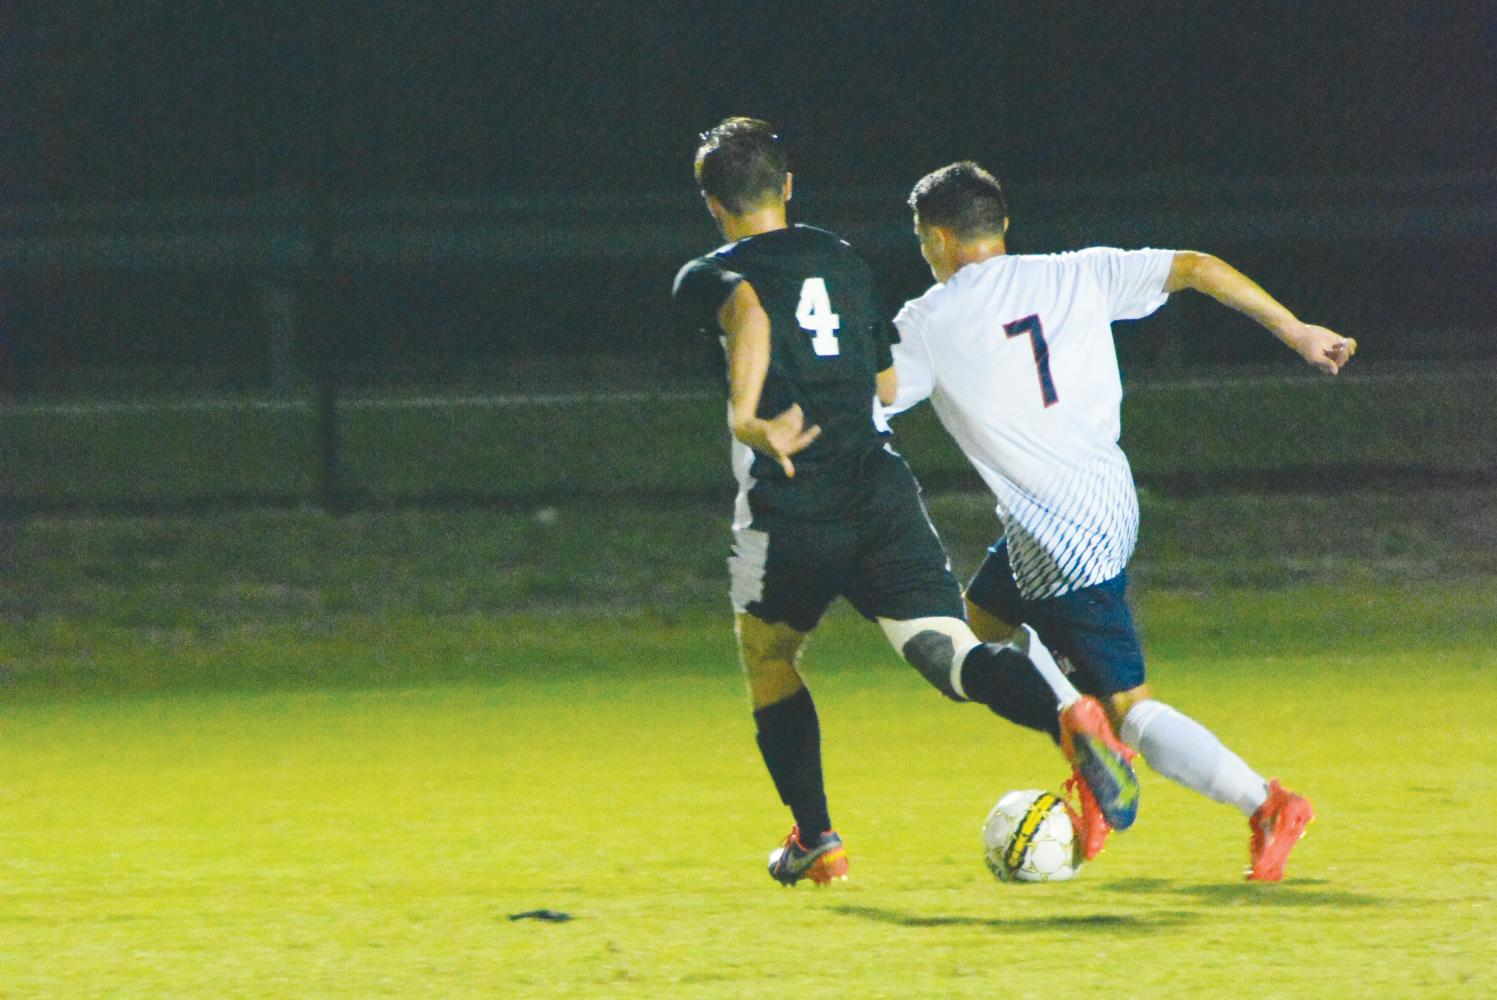 Gaspard Mianne pushes past a Lenior-Rhyme University defender. The Oct. 14 game brings the patriots to a 6-6-0 record.